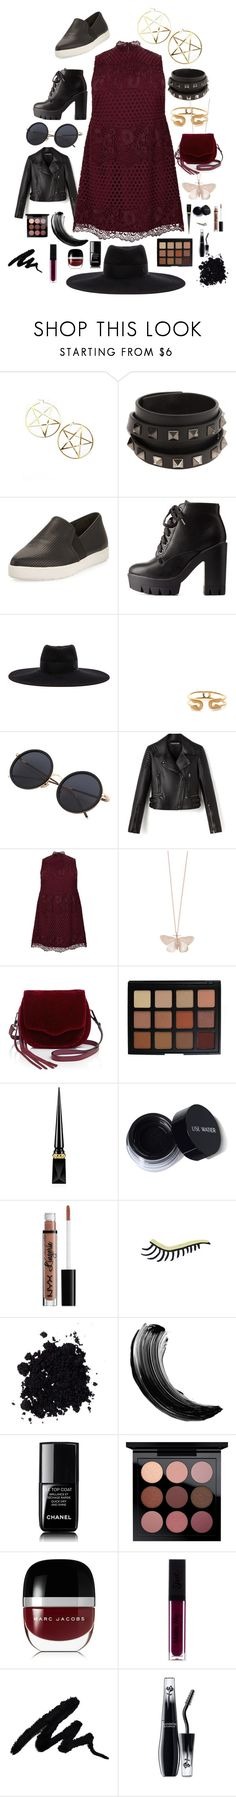 """Grunge Goddess"" by savvy-8201 ❤ liked on Polyvore featuring Killstar, Valentino, Vince, Charlotte Russe, Maison Michel, Jeweliq, New Look, Alex Monroe, Rebecca Minkoff and Morphe"